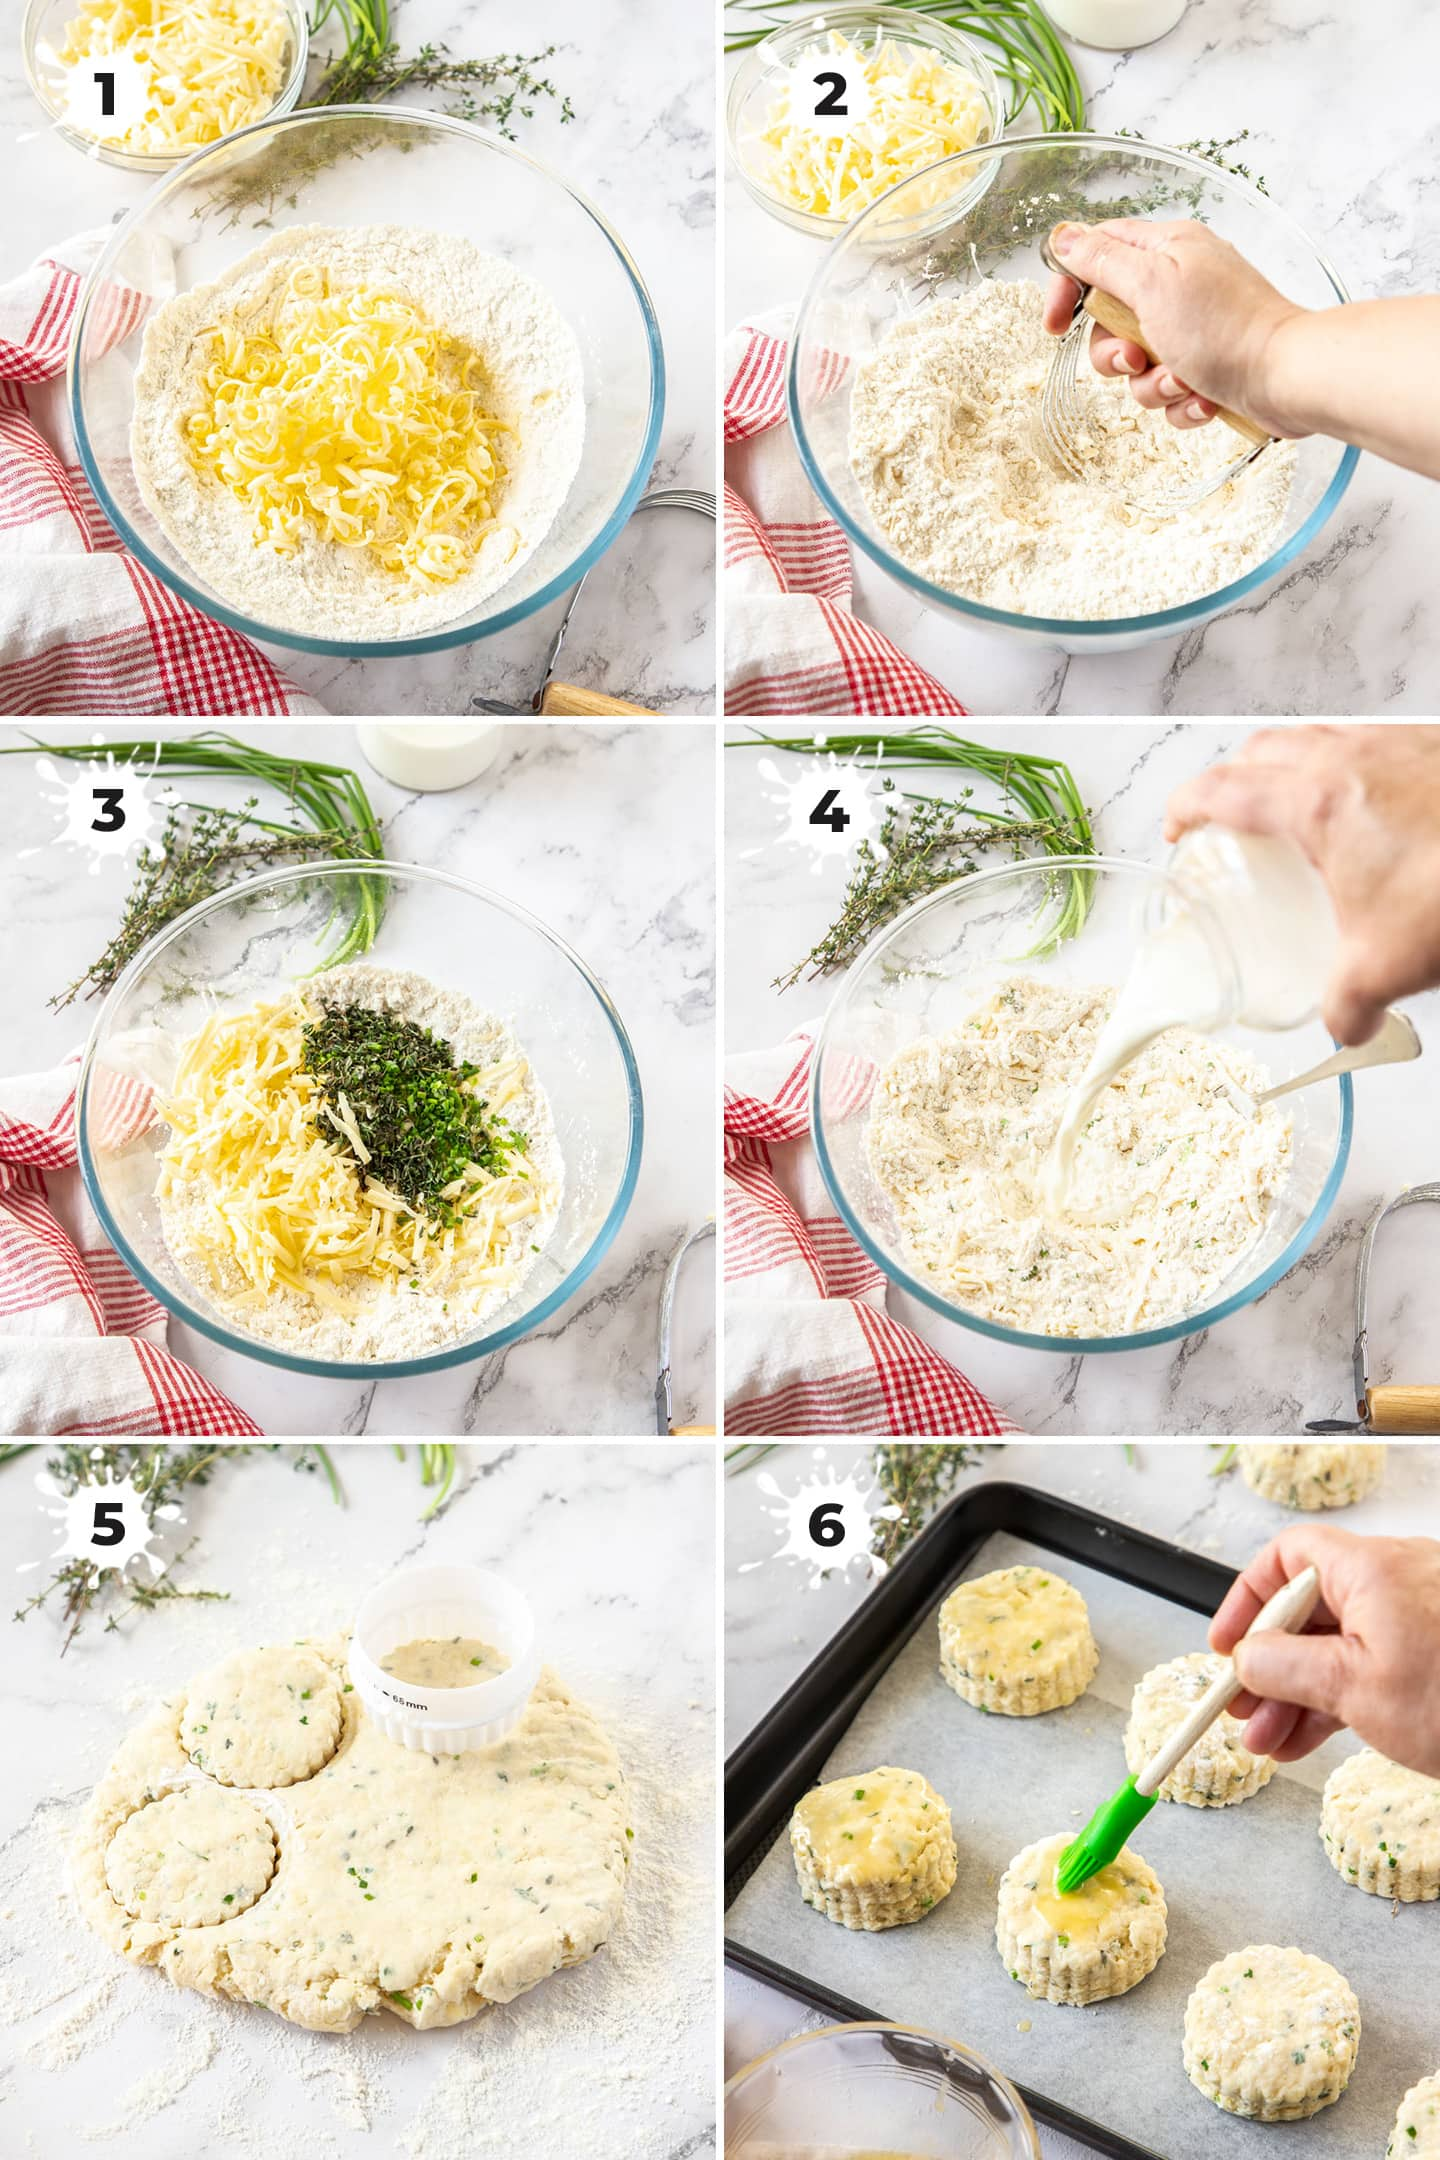 6 images showing how to make herb and cheese scones